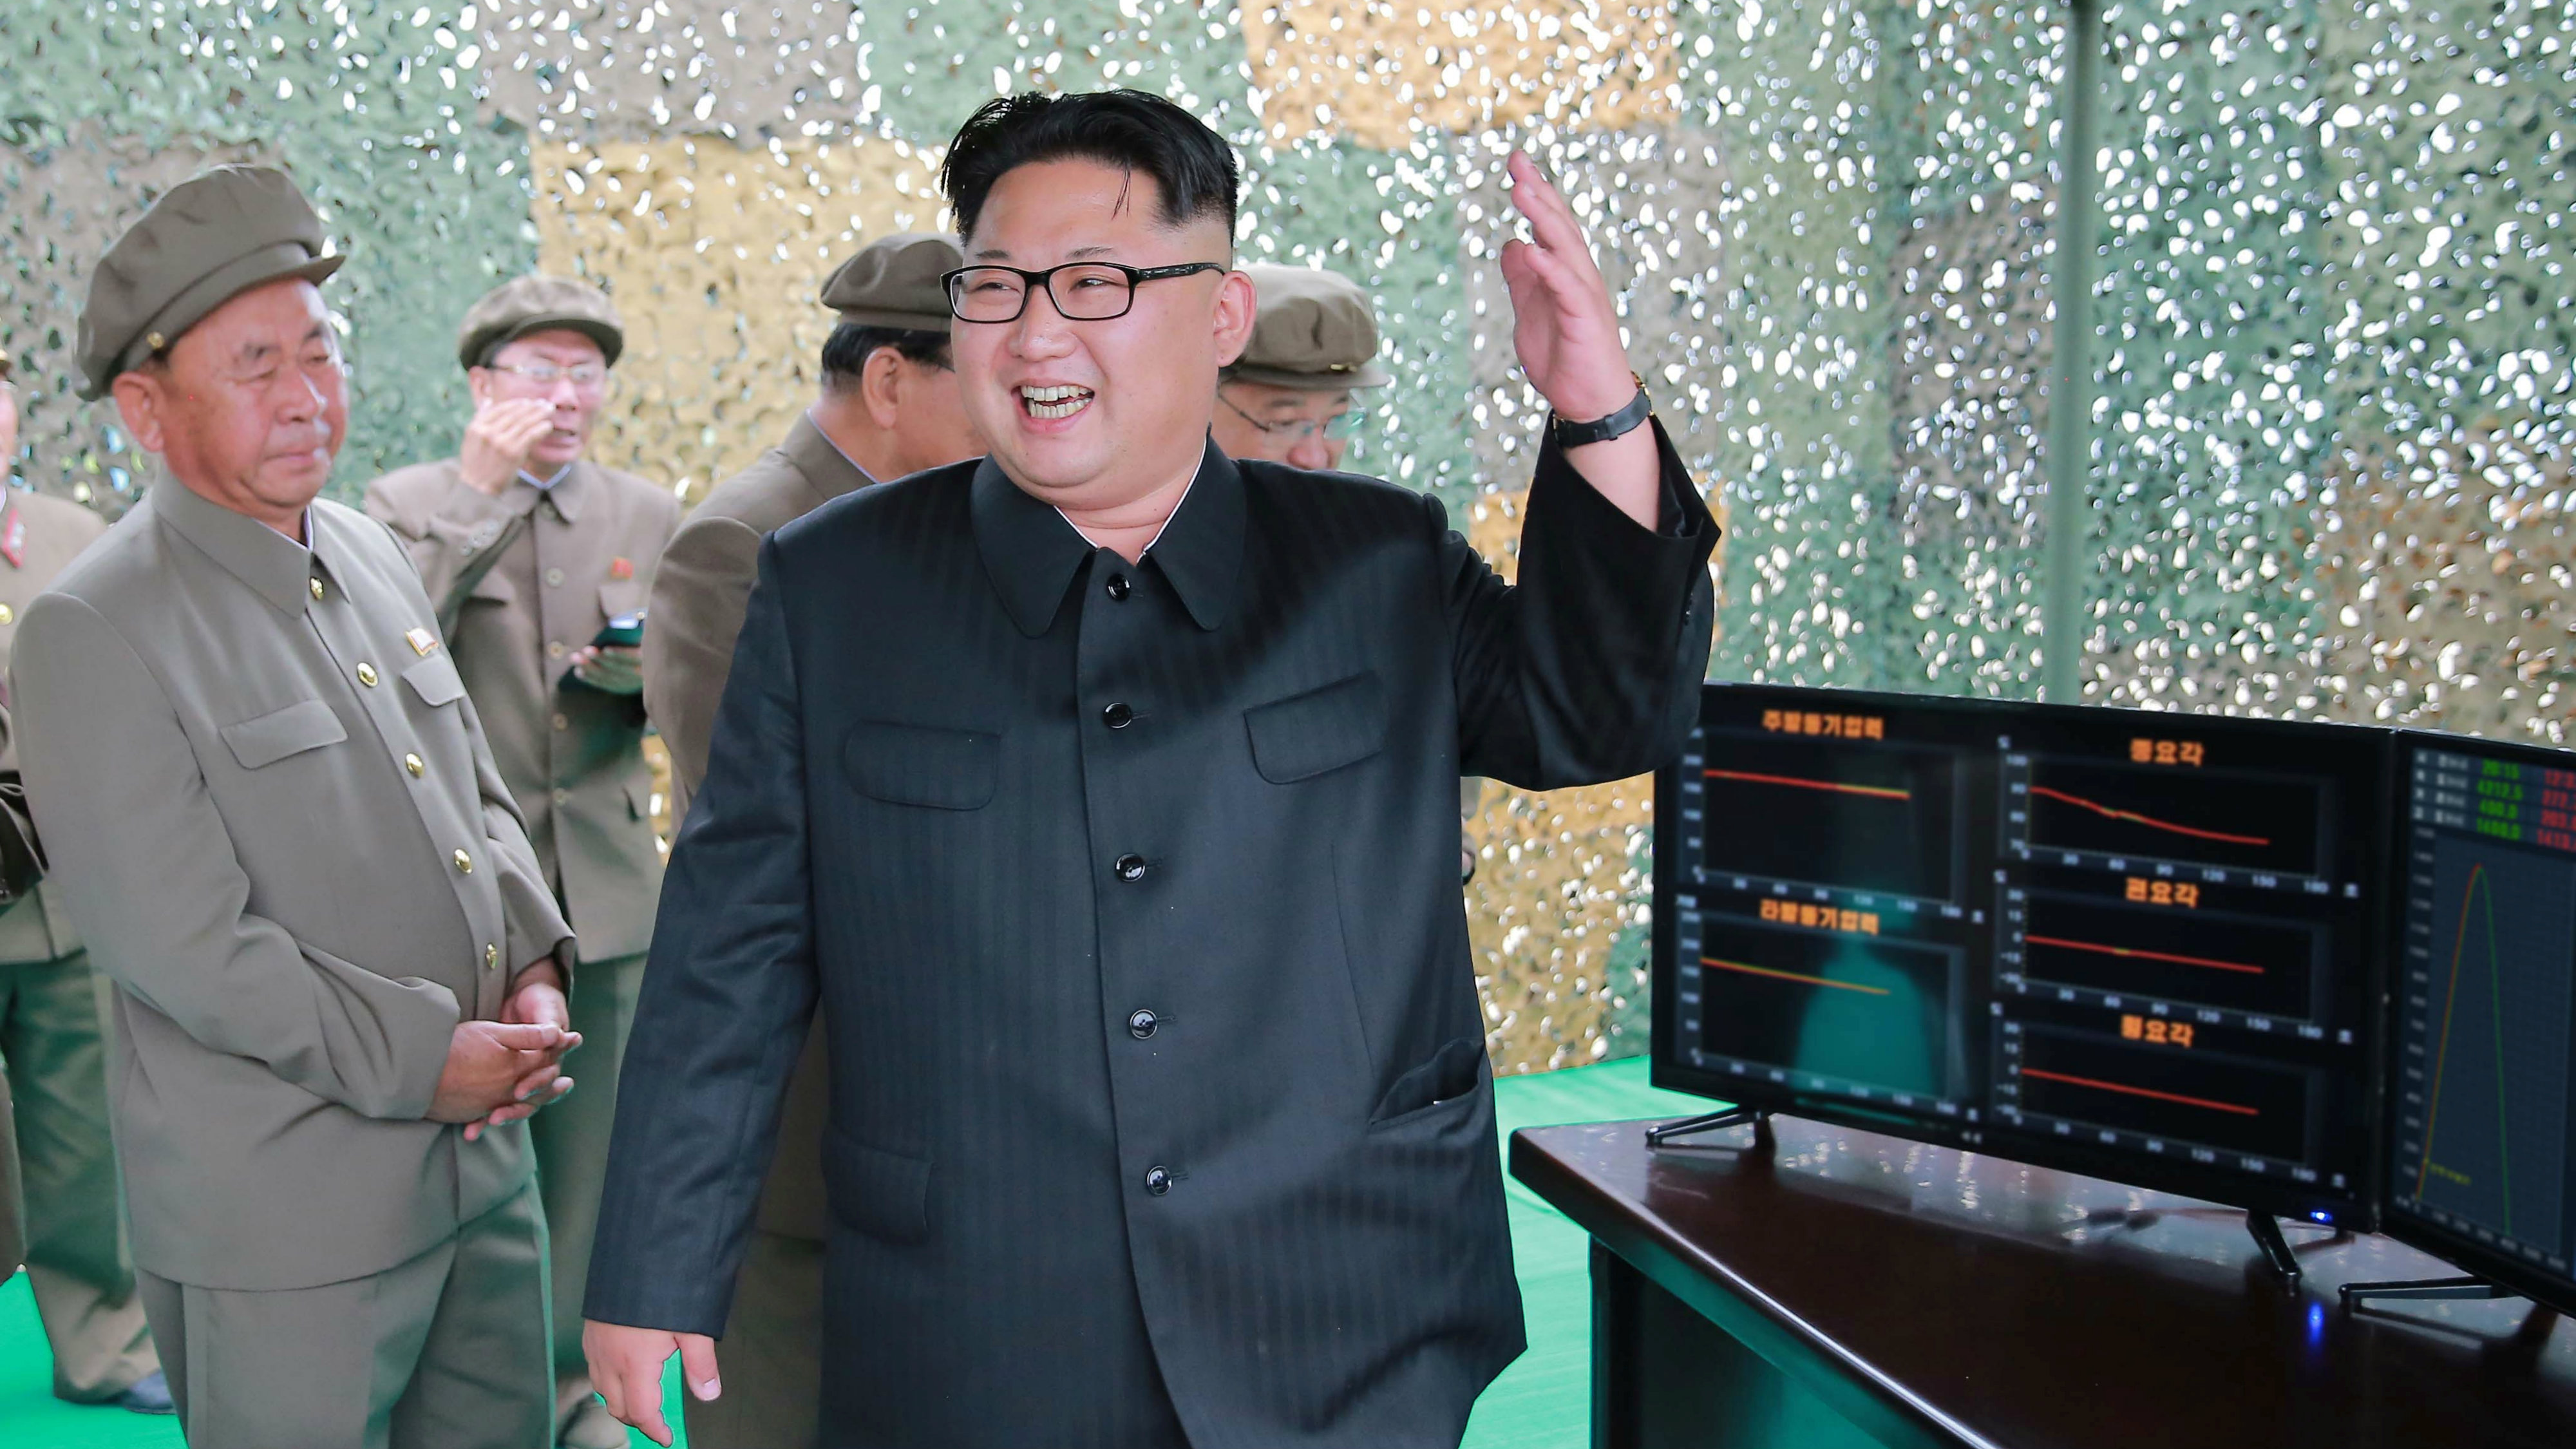 North Korean leader Kim Jong Un reacts during a test launch of ground-to-ground medium long-range ballistic rocket Hwasong-10 in this undated photo released by North Korea's Korean Central News Agency